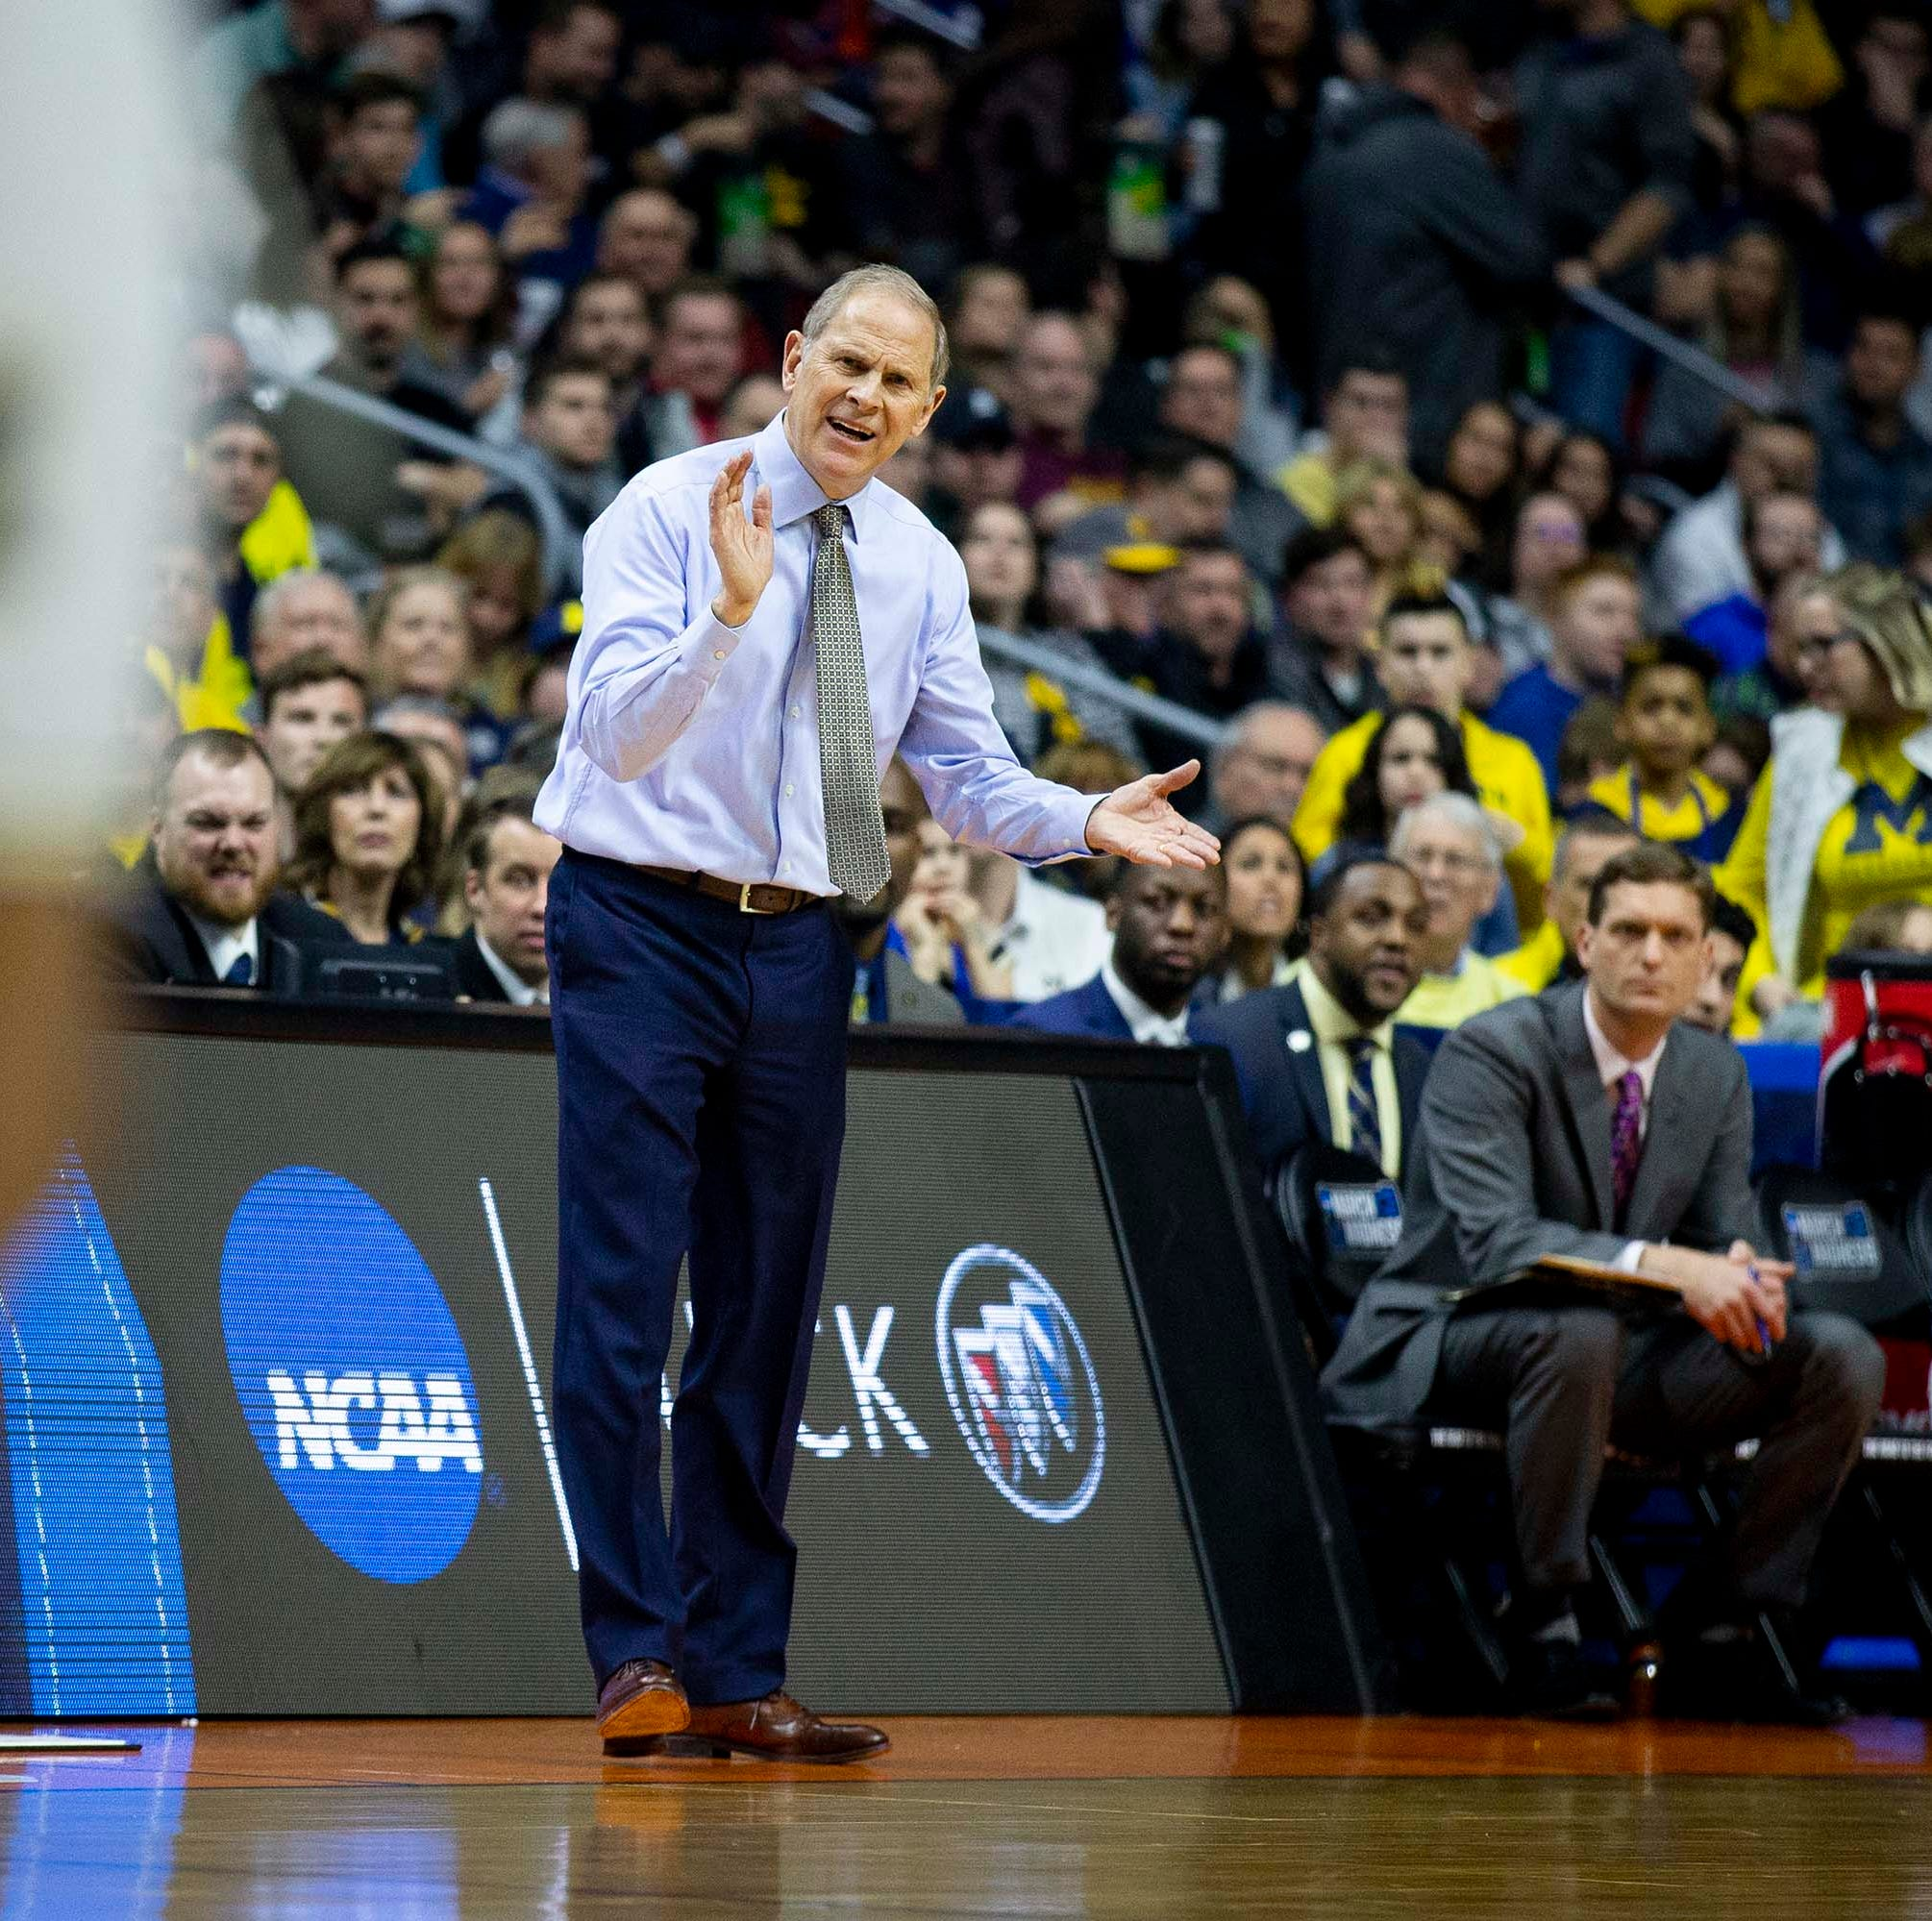 Michigan's John Beilein cements himself as program's G.O.A.T. Here's why